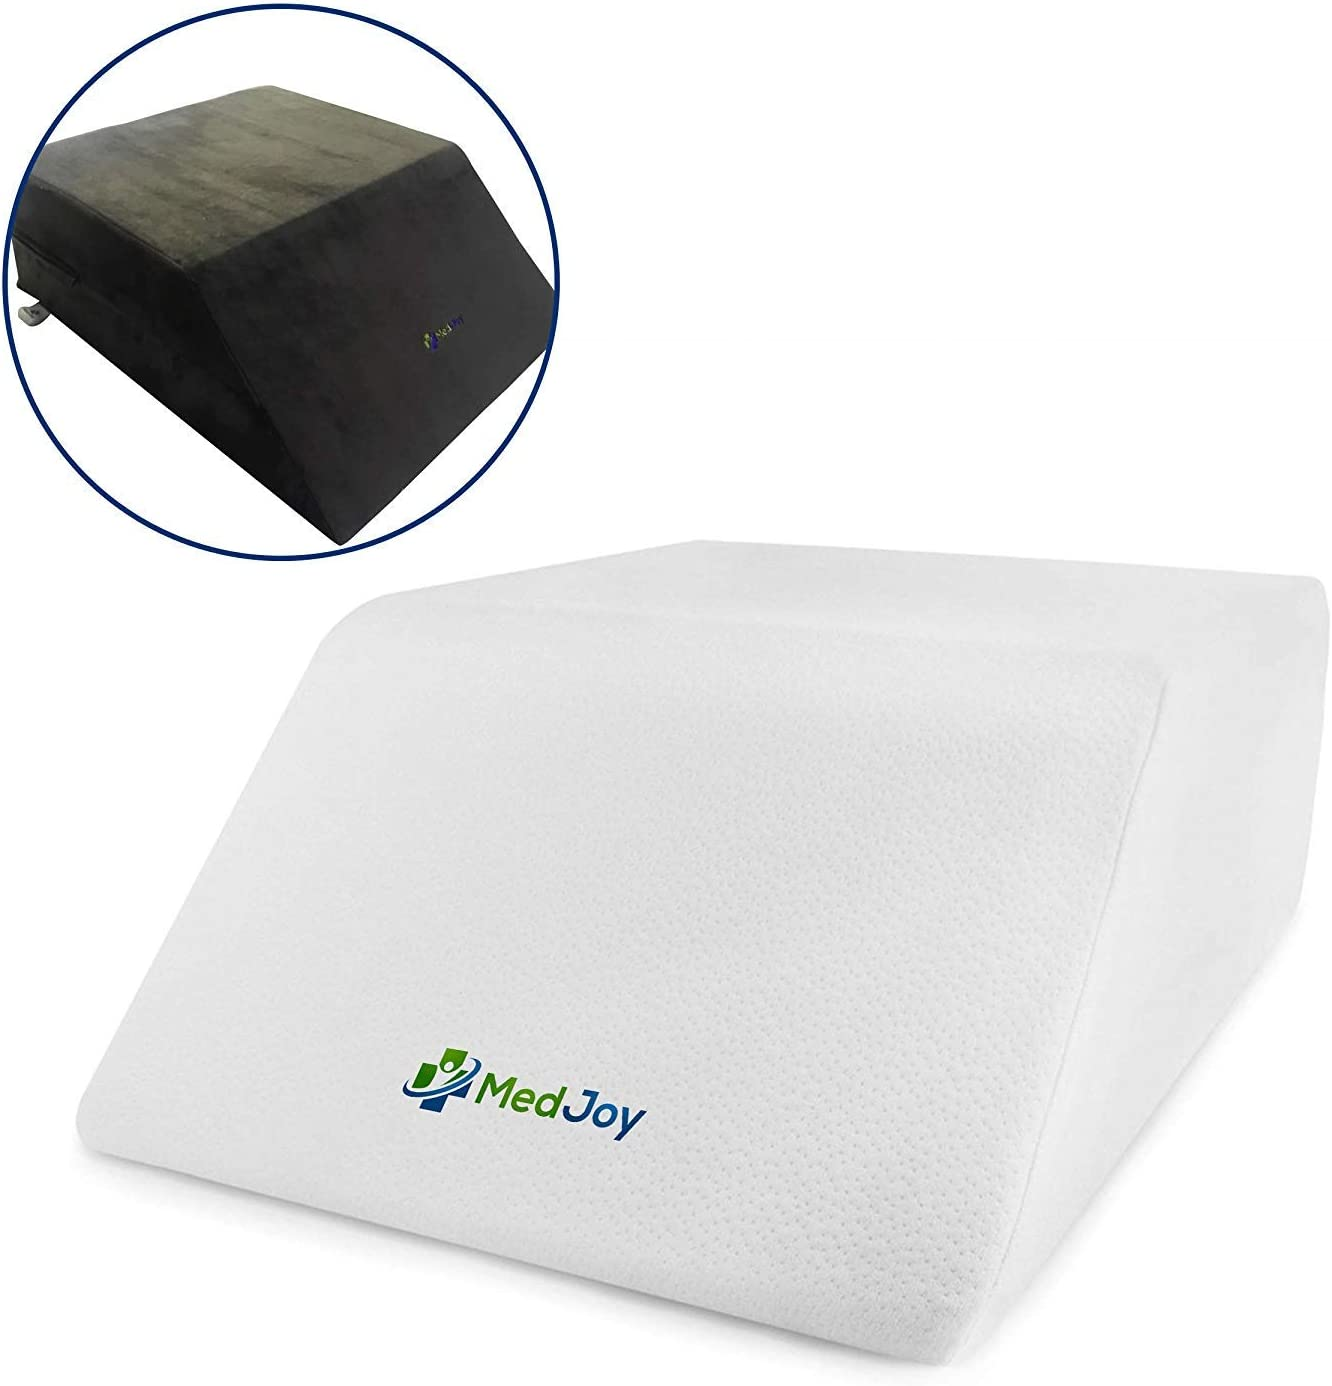 Med Joy-Leg Elevation Pillow with 2 Covers (1-White, 1-Grey). Leg Rest-Bed Wedge Pillow to Improve Circulation-Reduce Swelling-Back Pain-Sciatica. Leg Support with Layered Memory Foam-24 x 20 x 8 inch